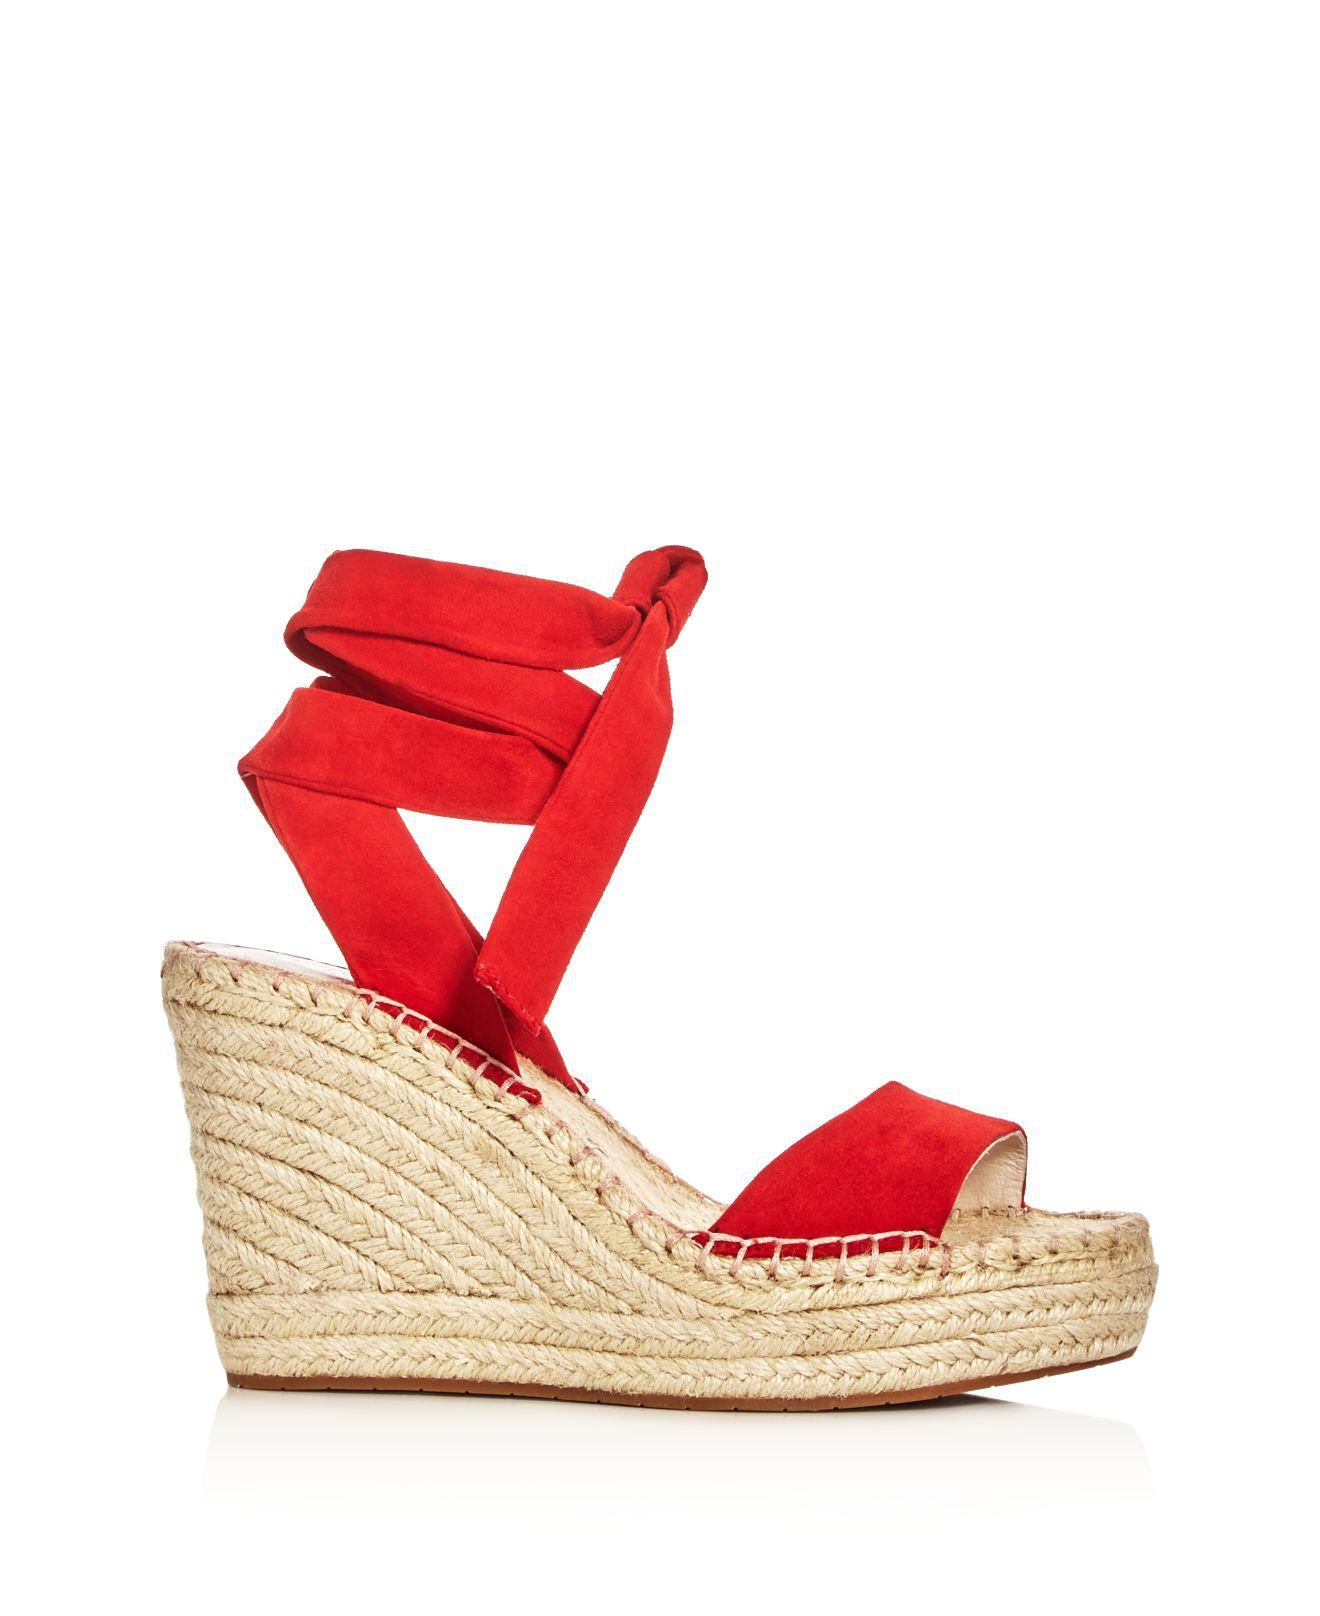 962a598692e Lyst - Kenneth Cole Odile Ankle Tie Espadrille Wedge Sandals